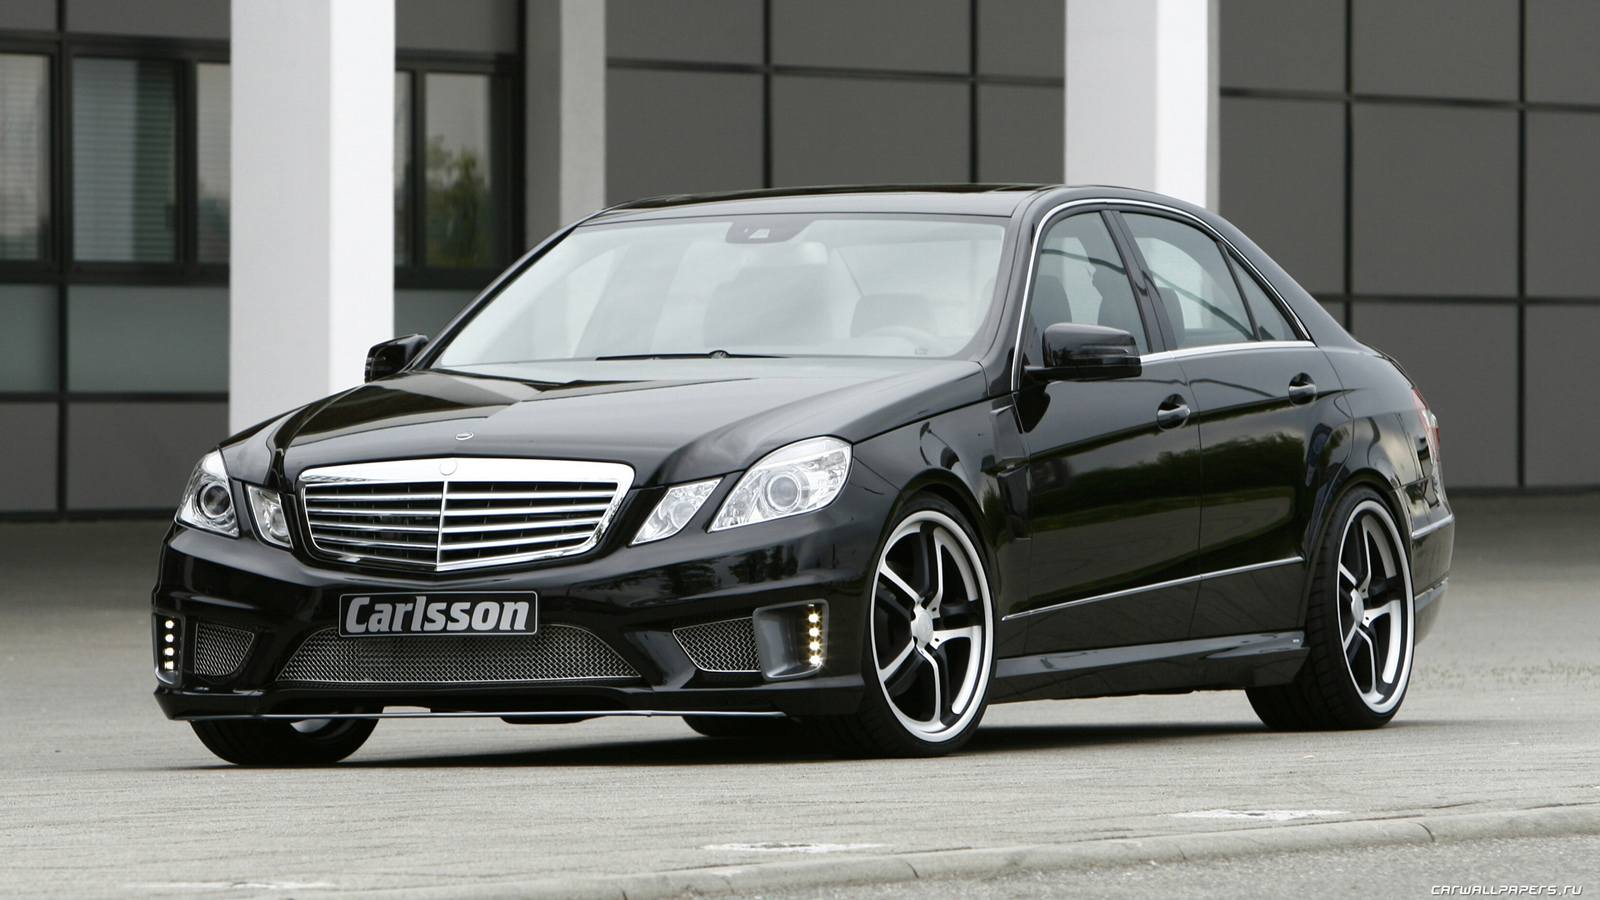 Mercedes benz e class cars specifications technical data for 2009 s class mercedes benz